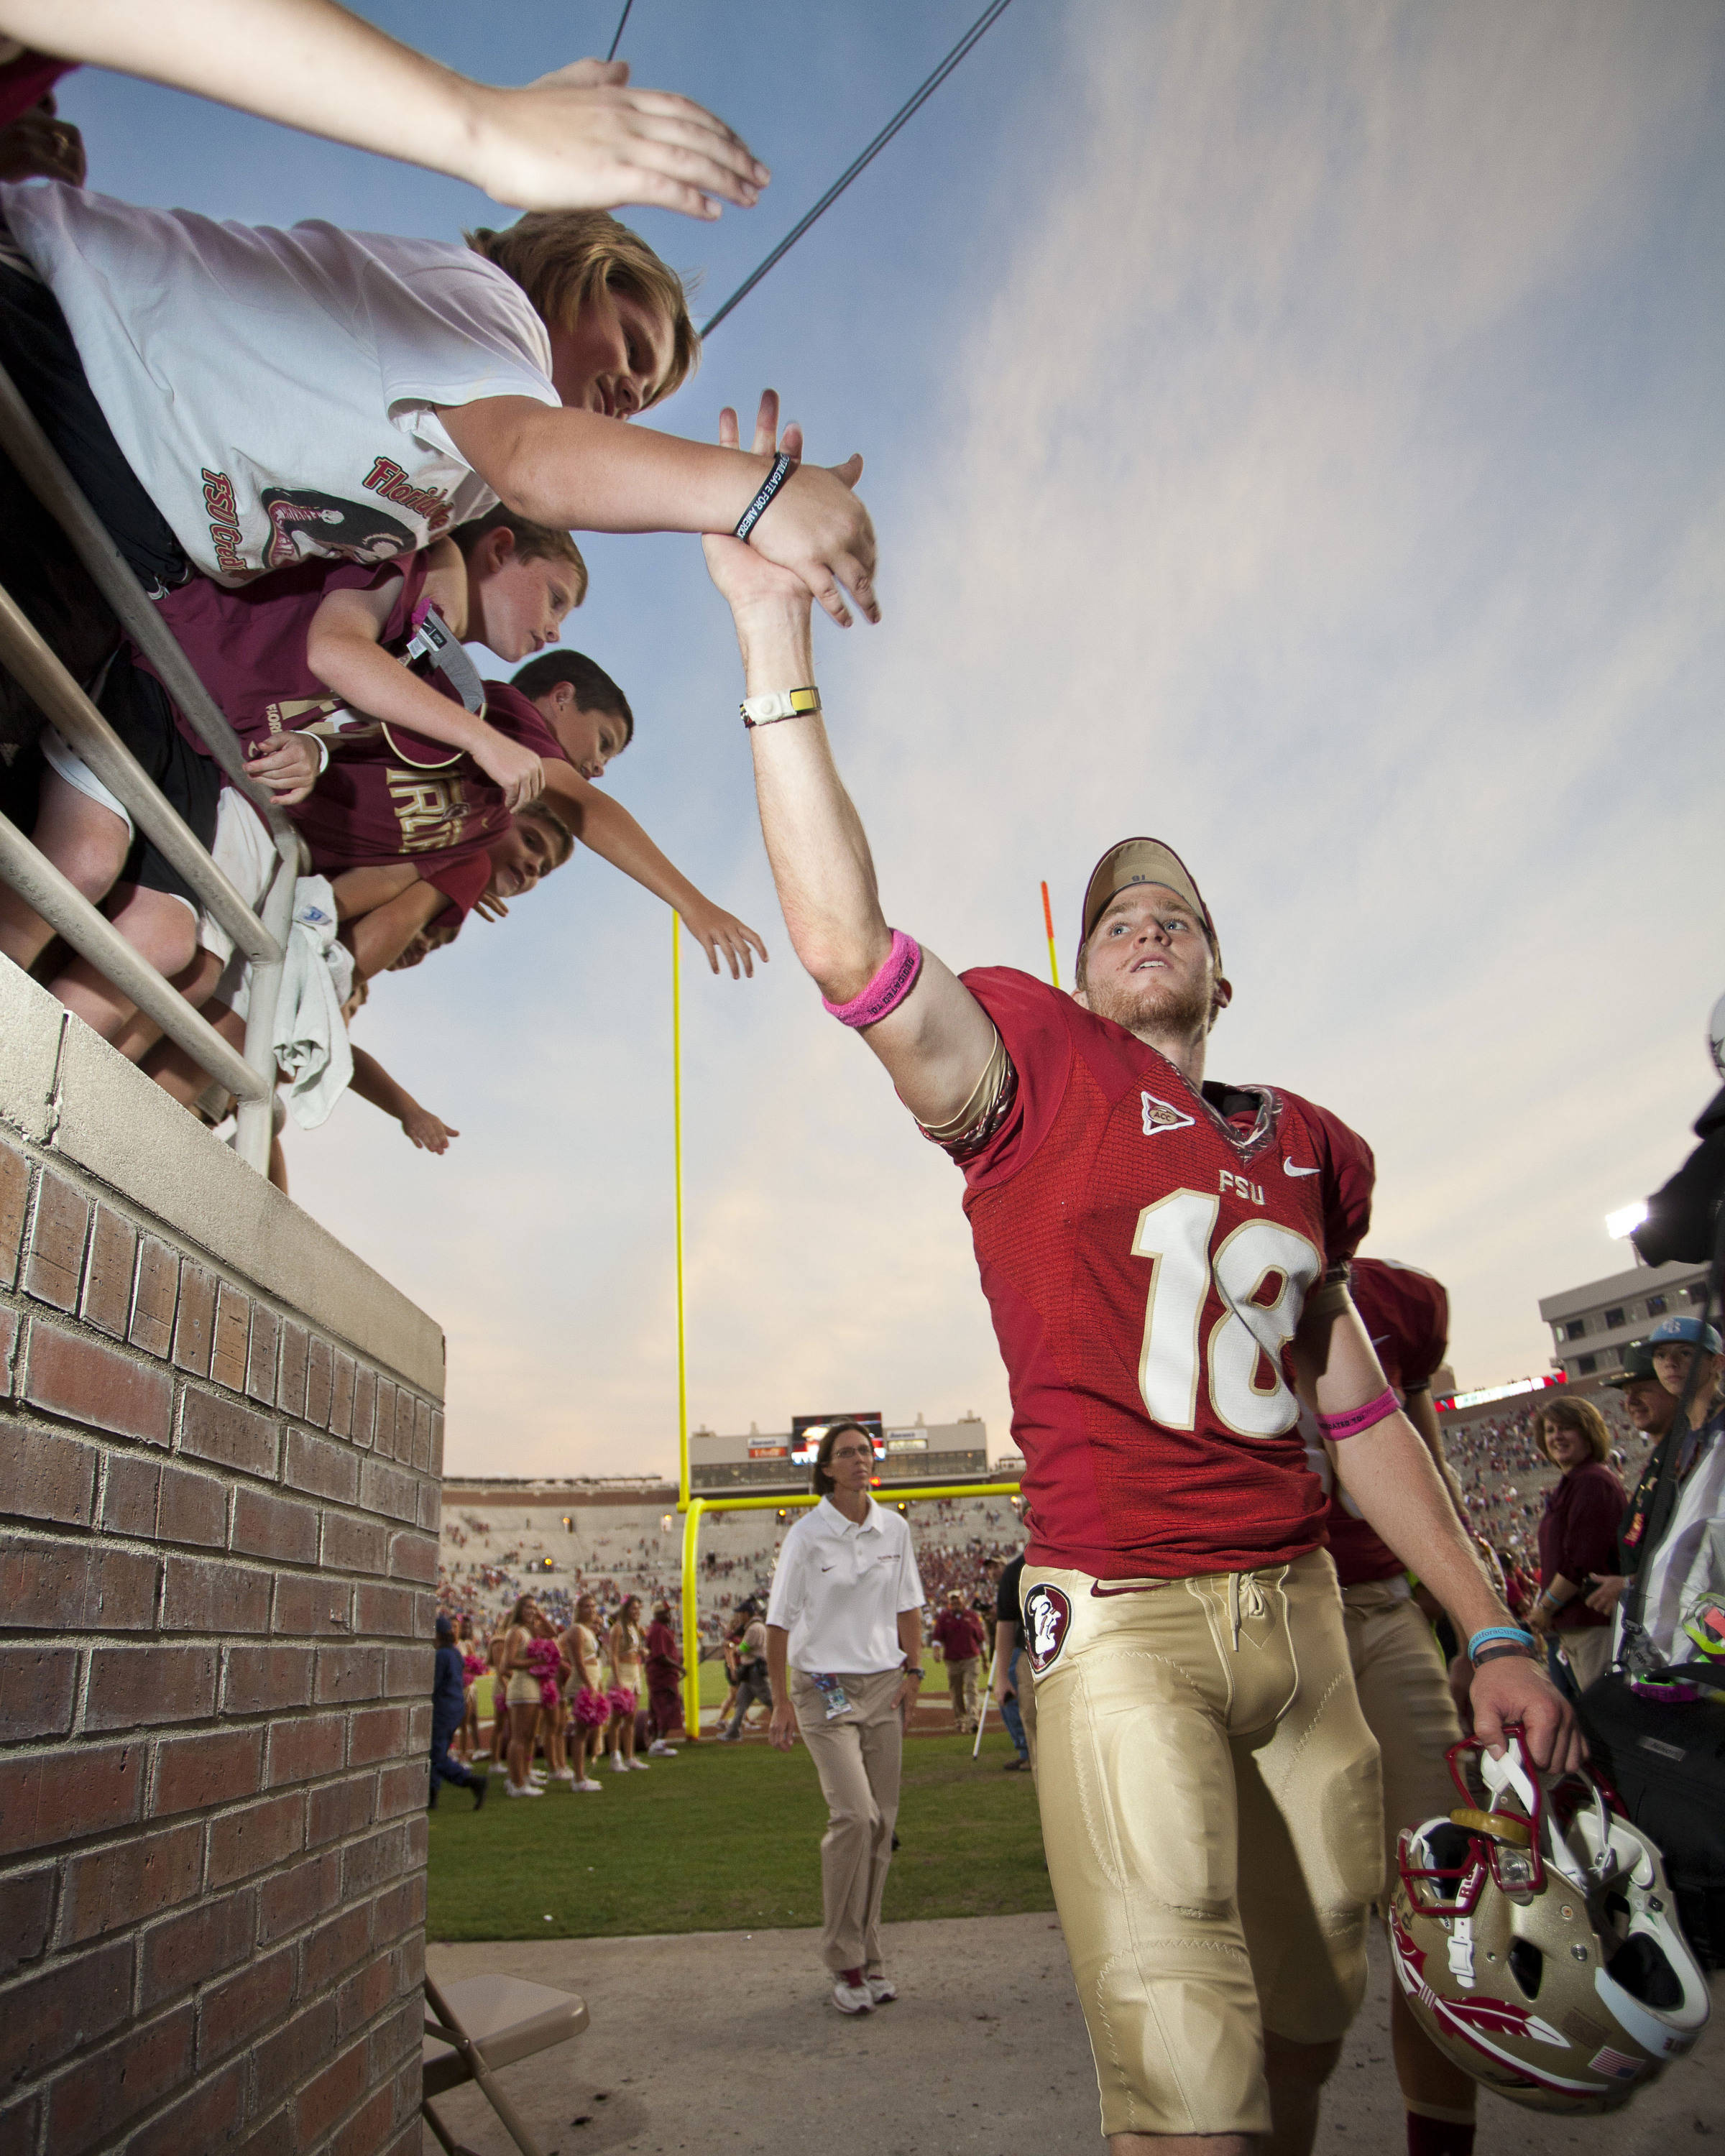 Dustin Hopkins (18) high-fives fans after FSU's 48-7 victory over Duke on October 27, 2012 in Tallahassee, Fla.